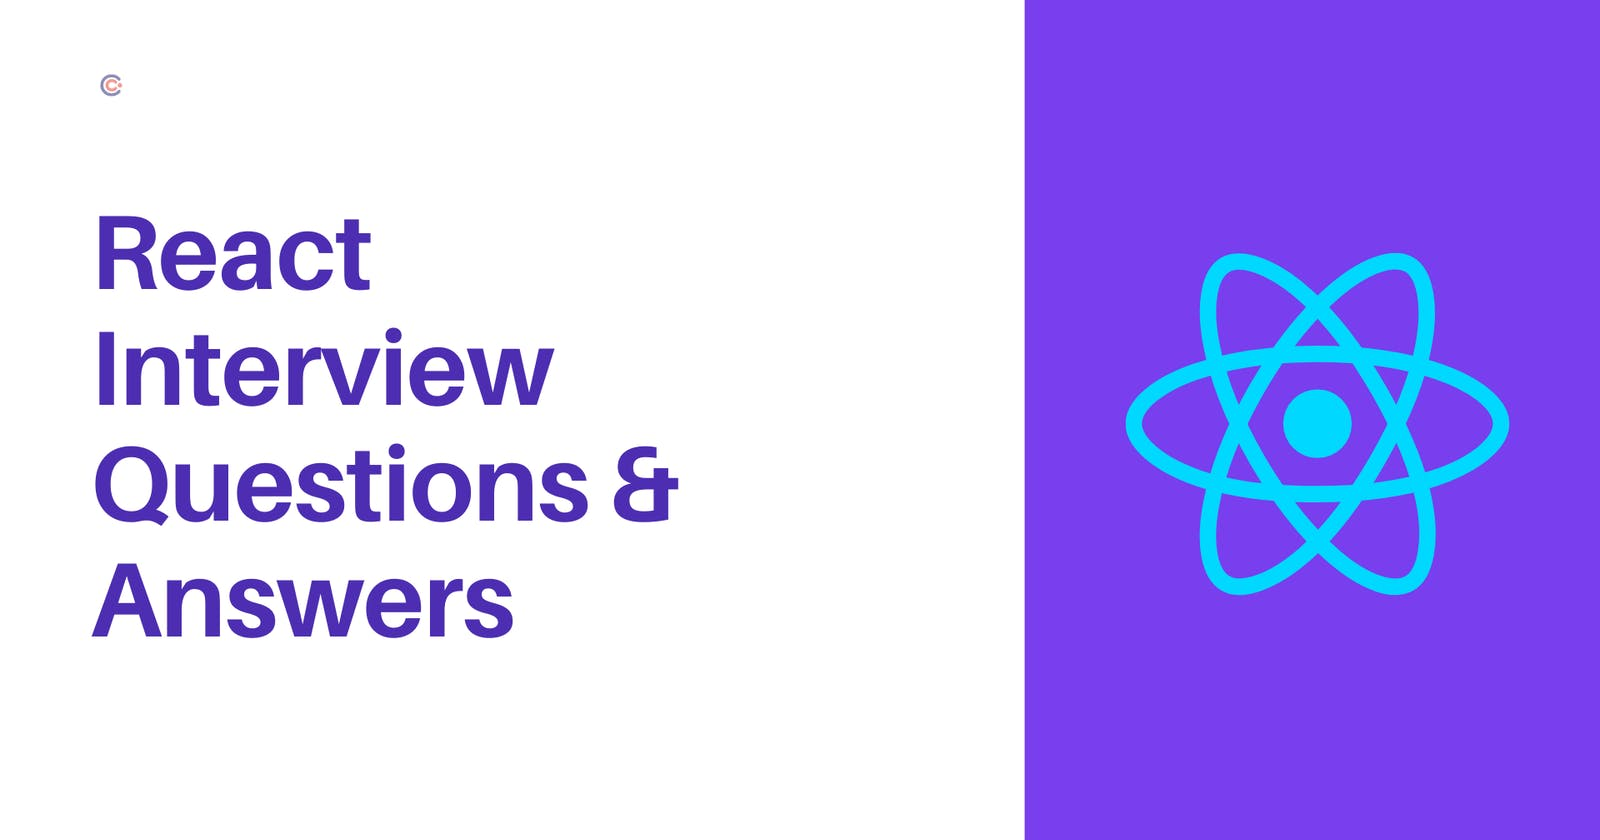 React Interview Questions 2021: 50 Most Asked Questions & Answers